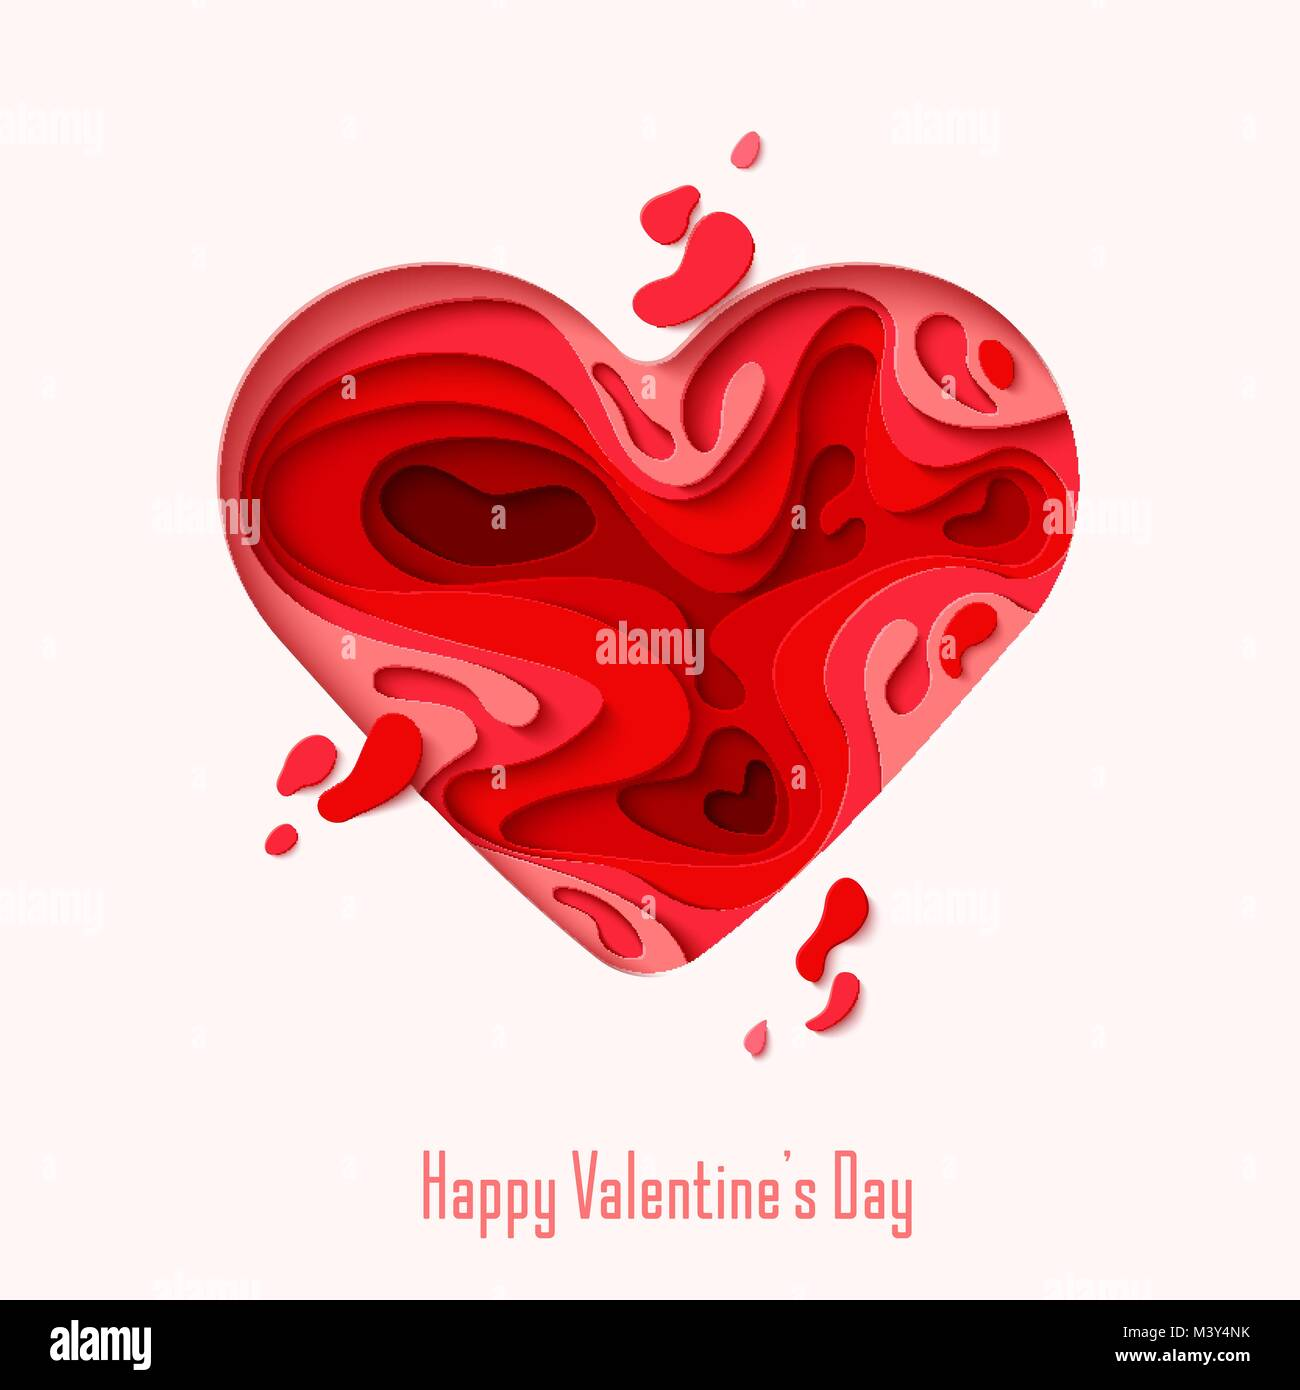 Happy valentines day greeting card 3d paper cut heart concept happy valentines day greeting card 3d paper cut heart concept design background vector illustration paper carving heart shapes with shadow februar kristyandbryce Gallery